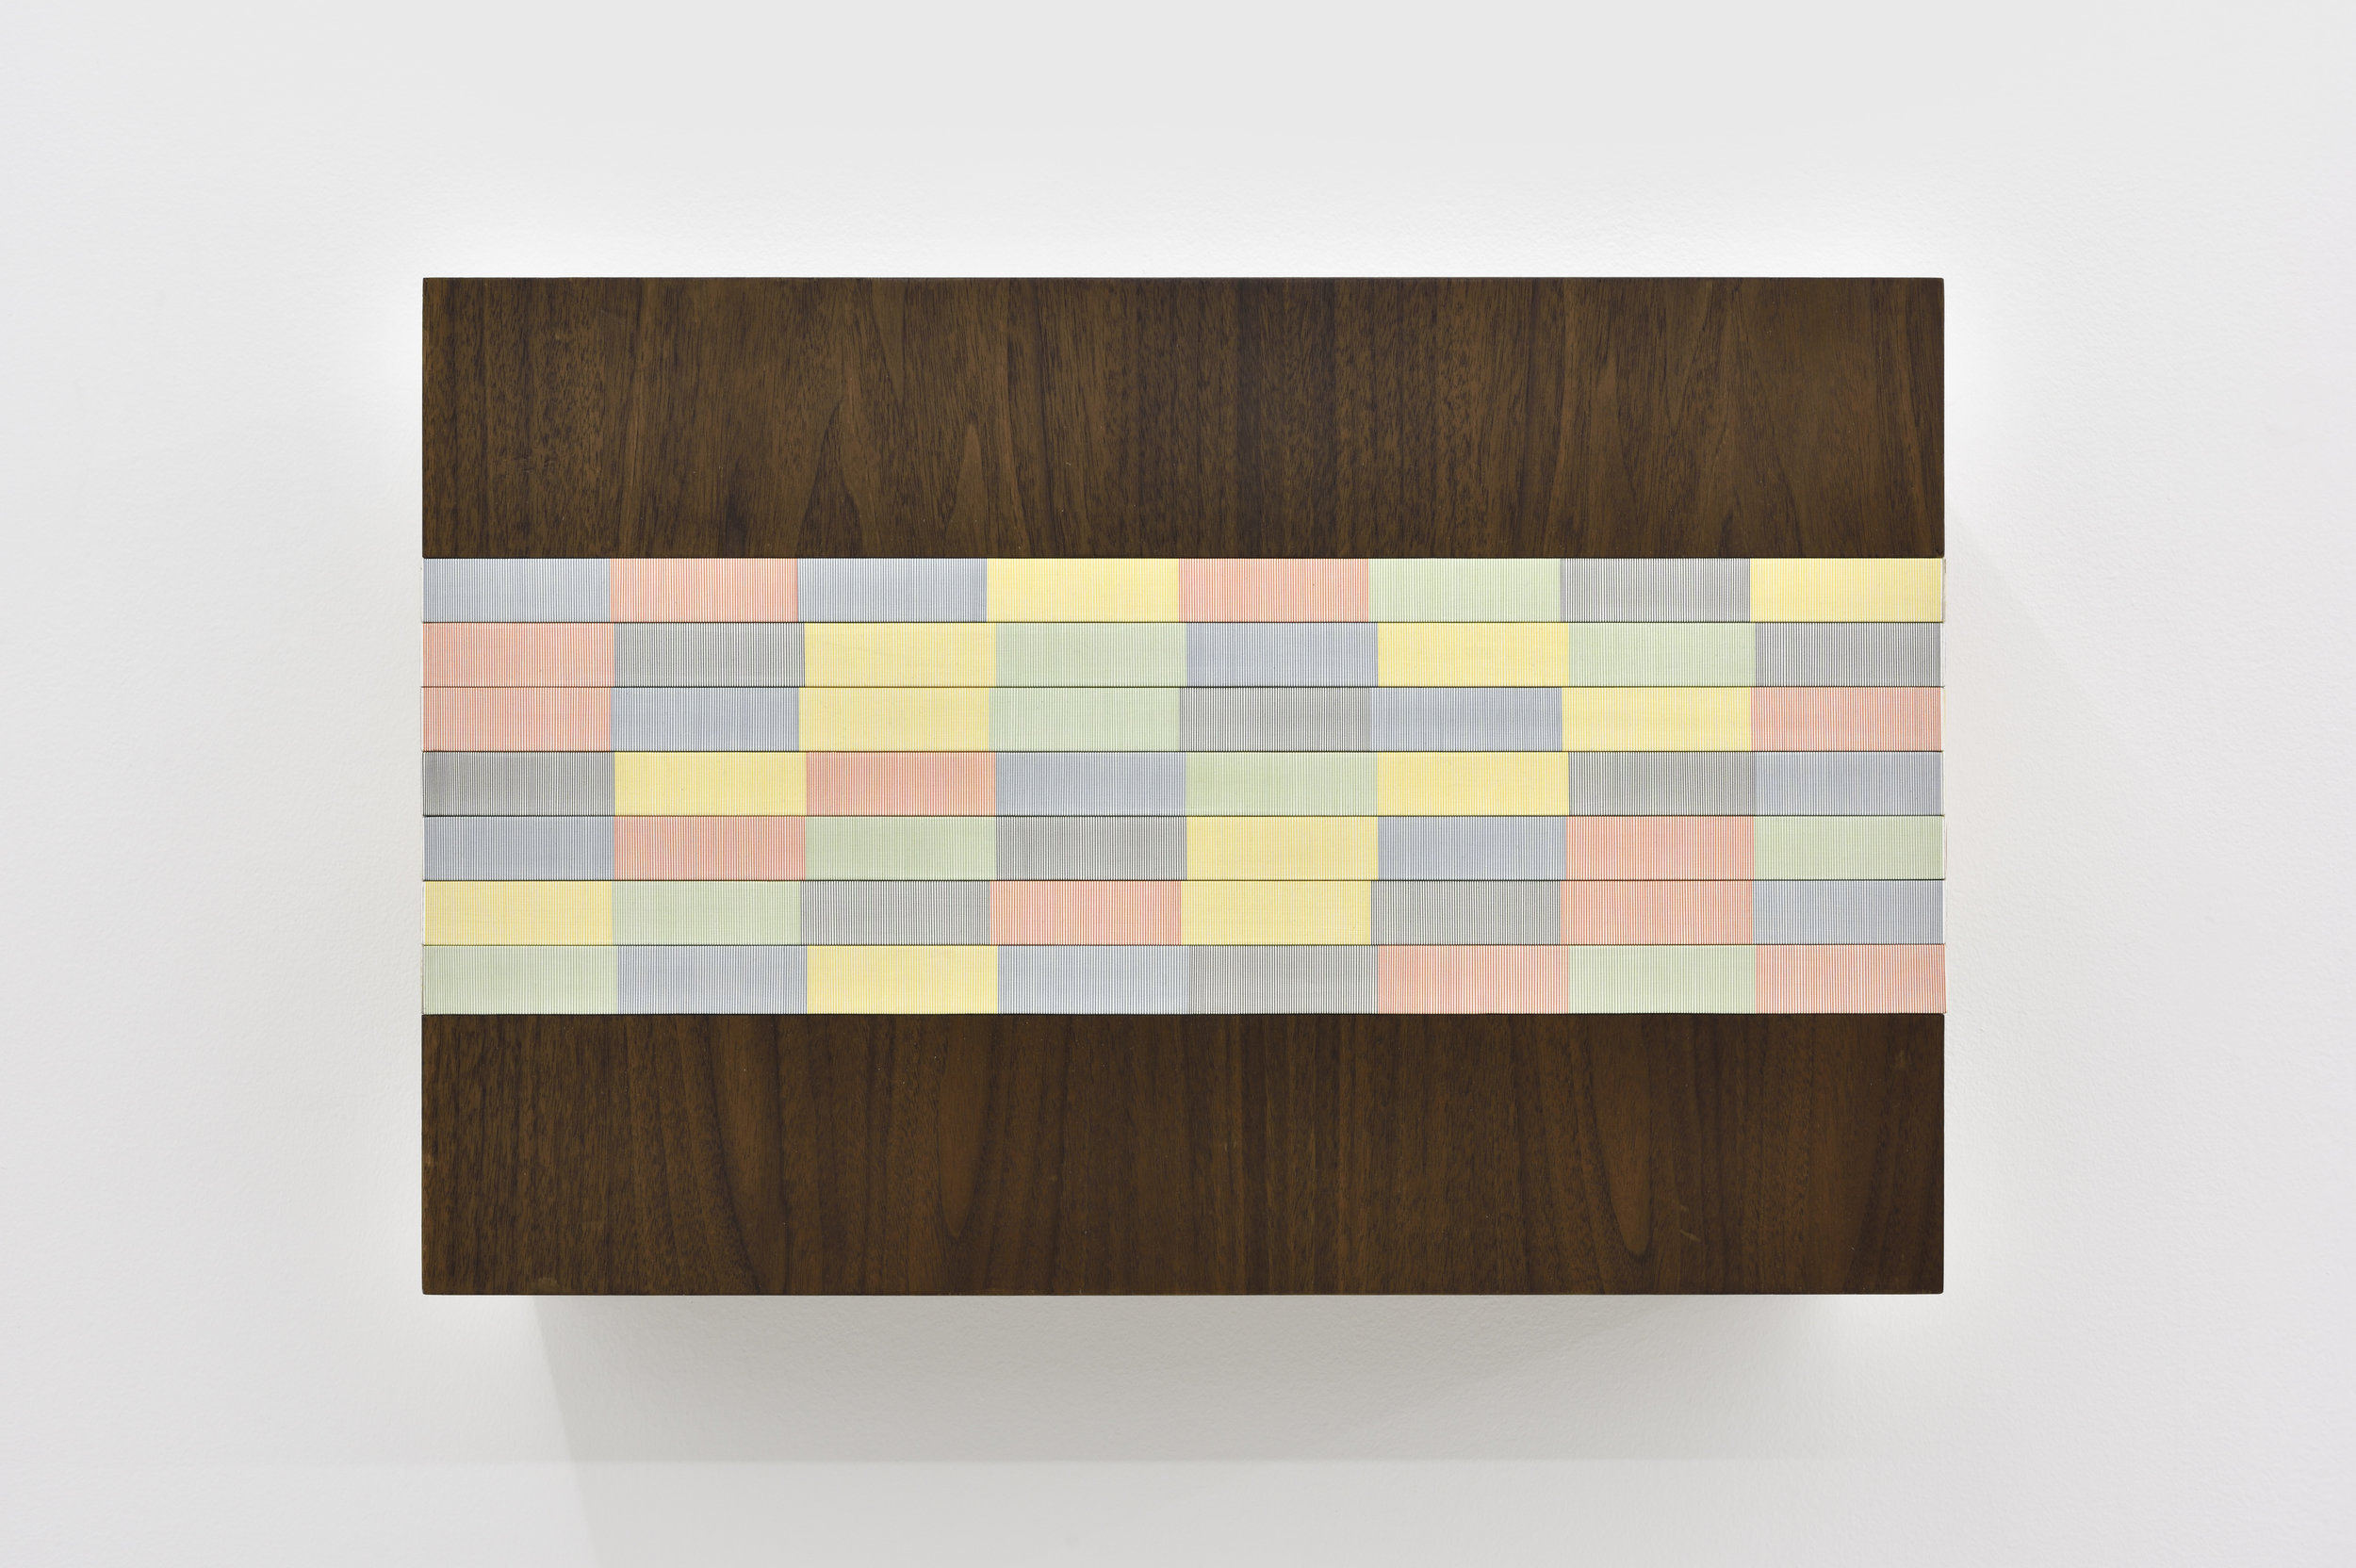 Untitled (Blue/orange wall sculpture), 2016 oil, single-strand rayon thread and basswood on walnut 46 x 61 x 20 cm - 18 1/8 x 24 1/32 x 7 7/8 inches